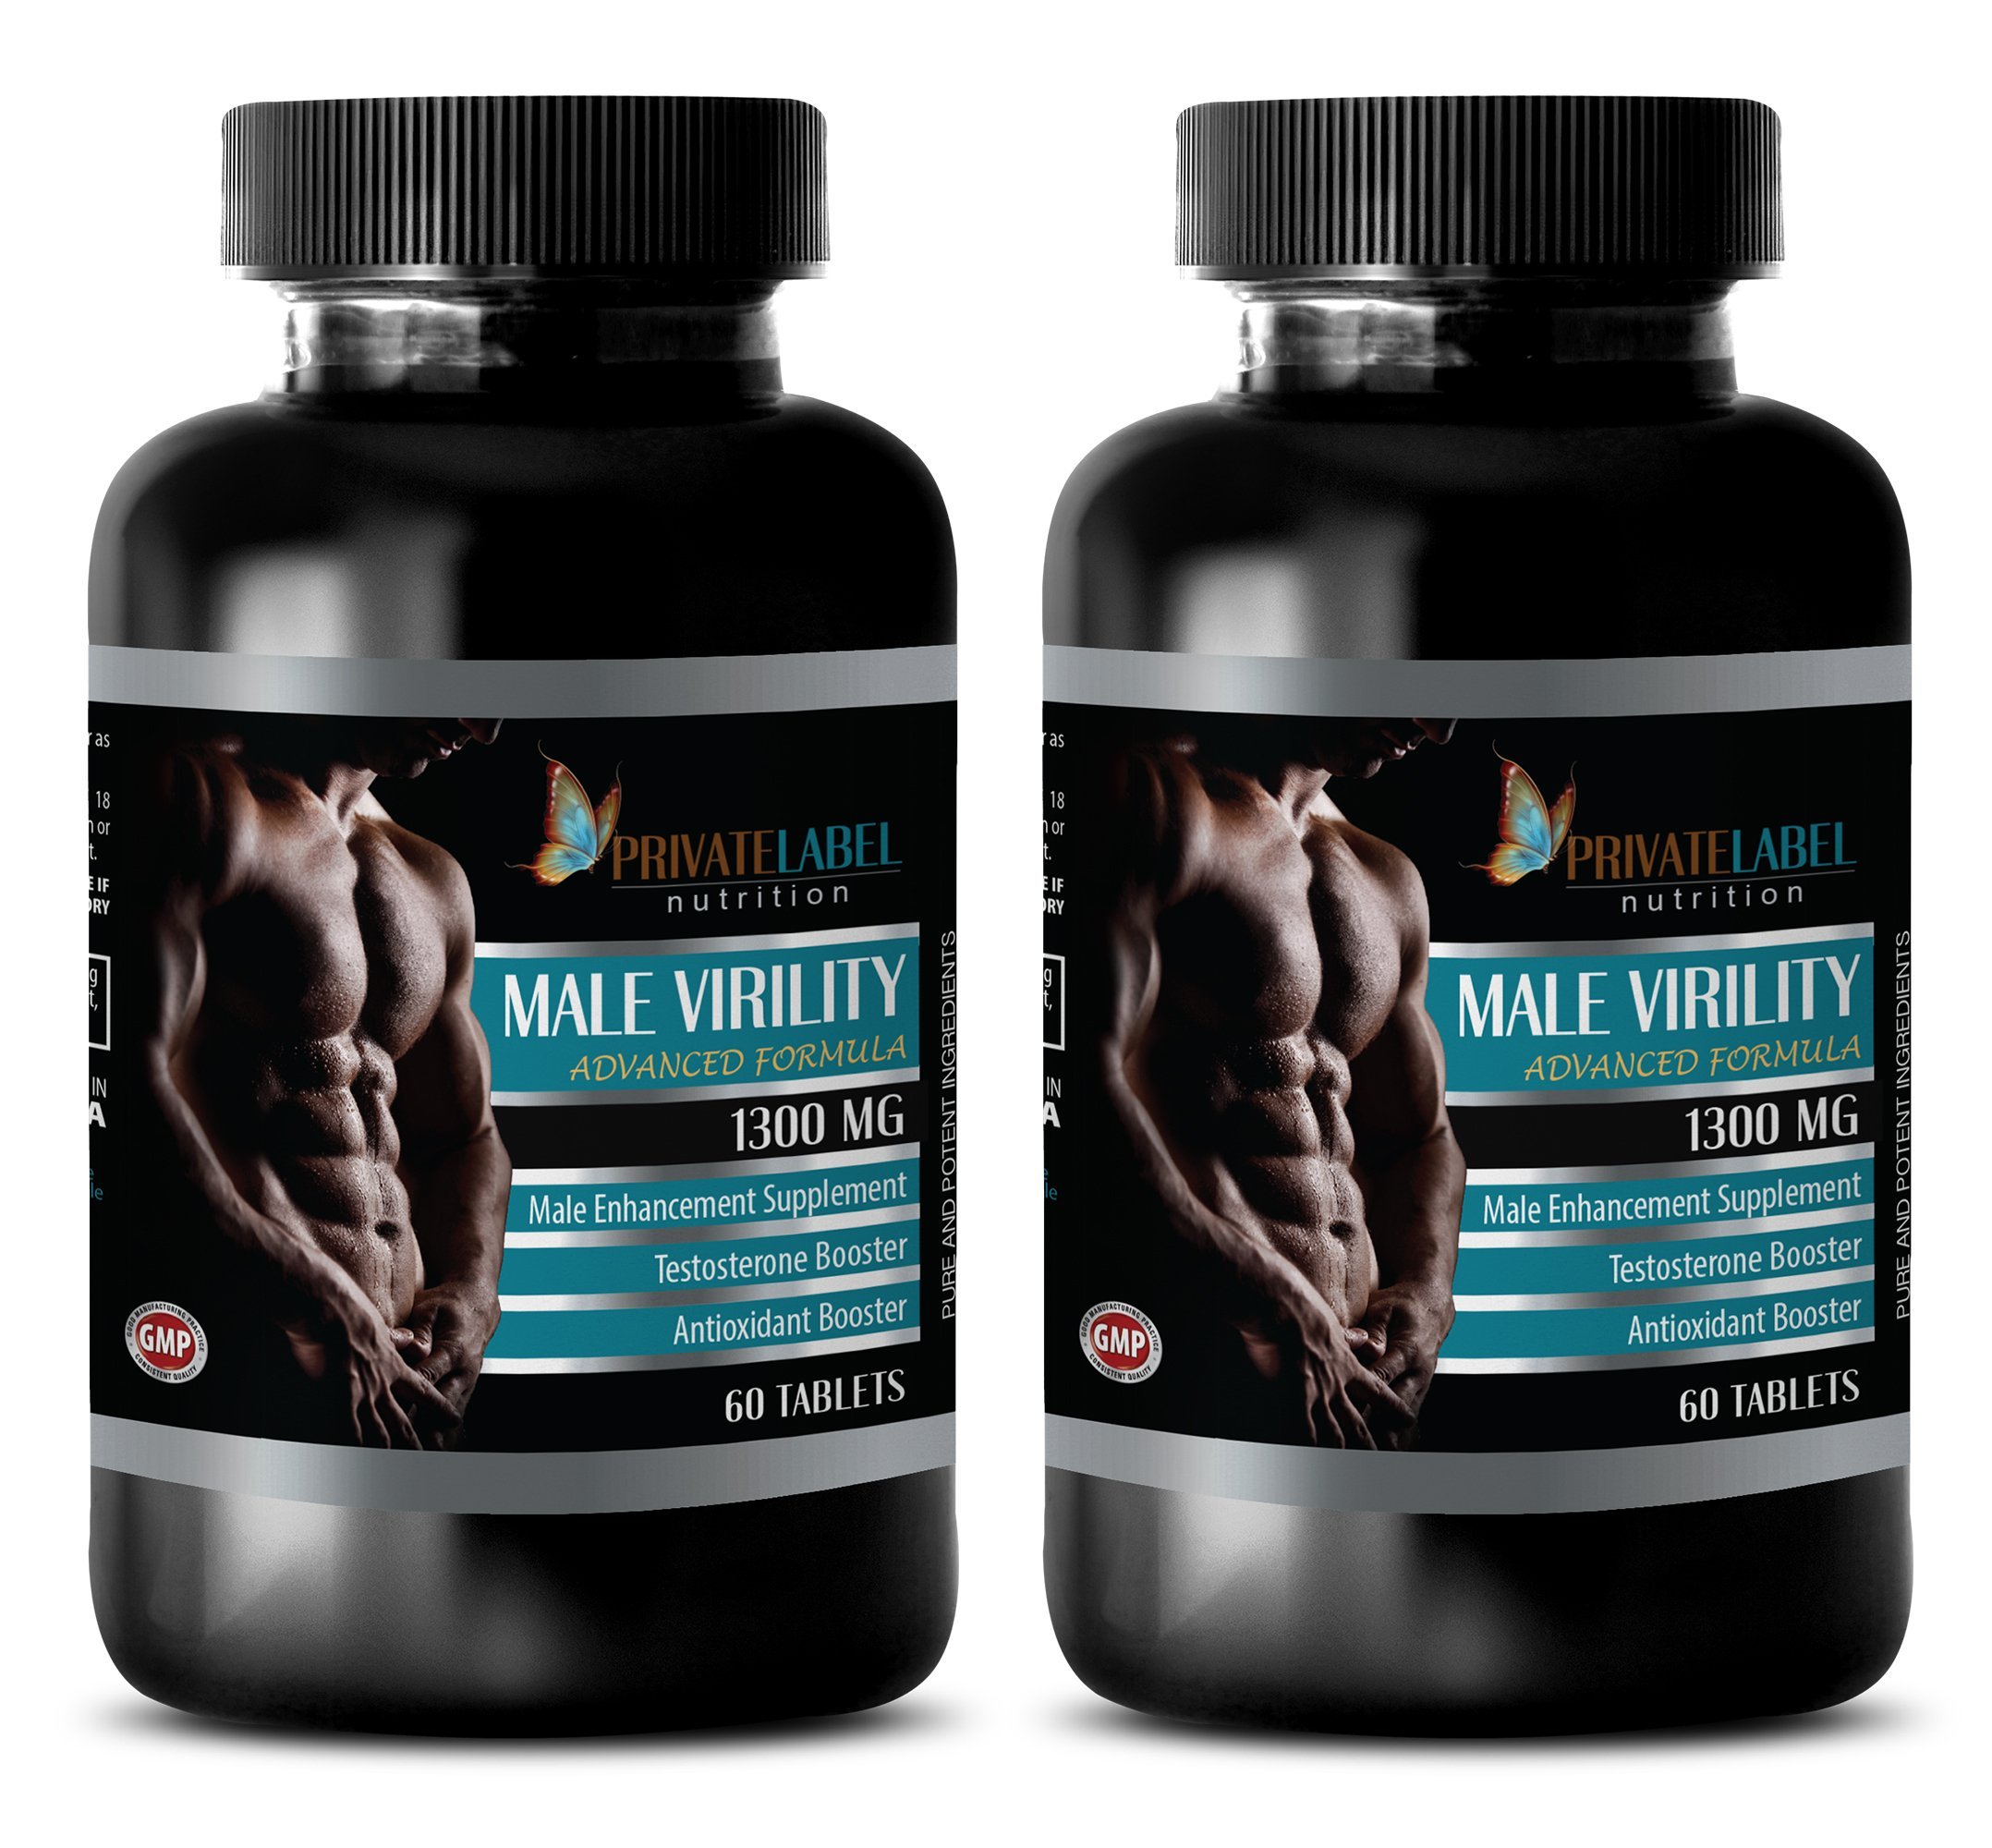 Male enhancing pills erection best seller - MALE VIRILITY 1300 Mg - ADVANCED FORMULA - MALE ENHANCEMENT SUPPLEMENT - maca for menopause - 2 Bottles (120 Tablets)